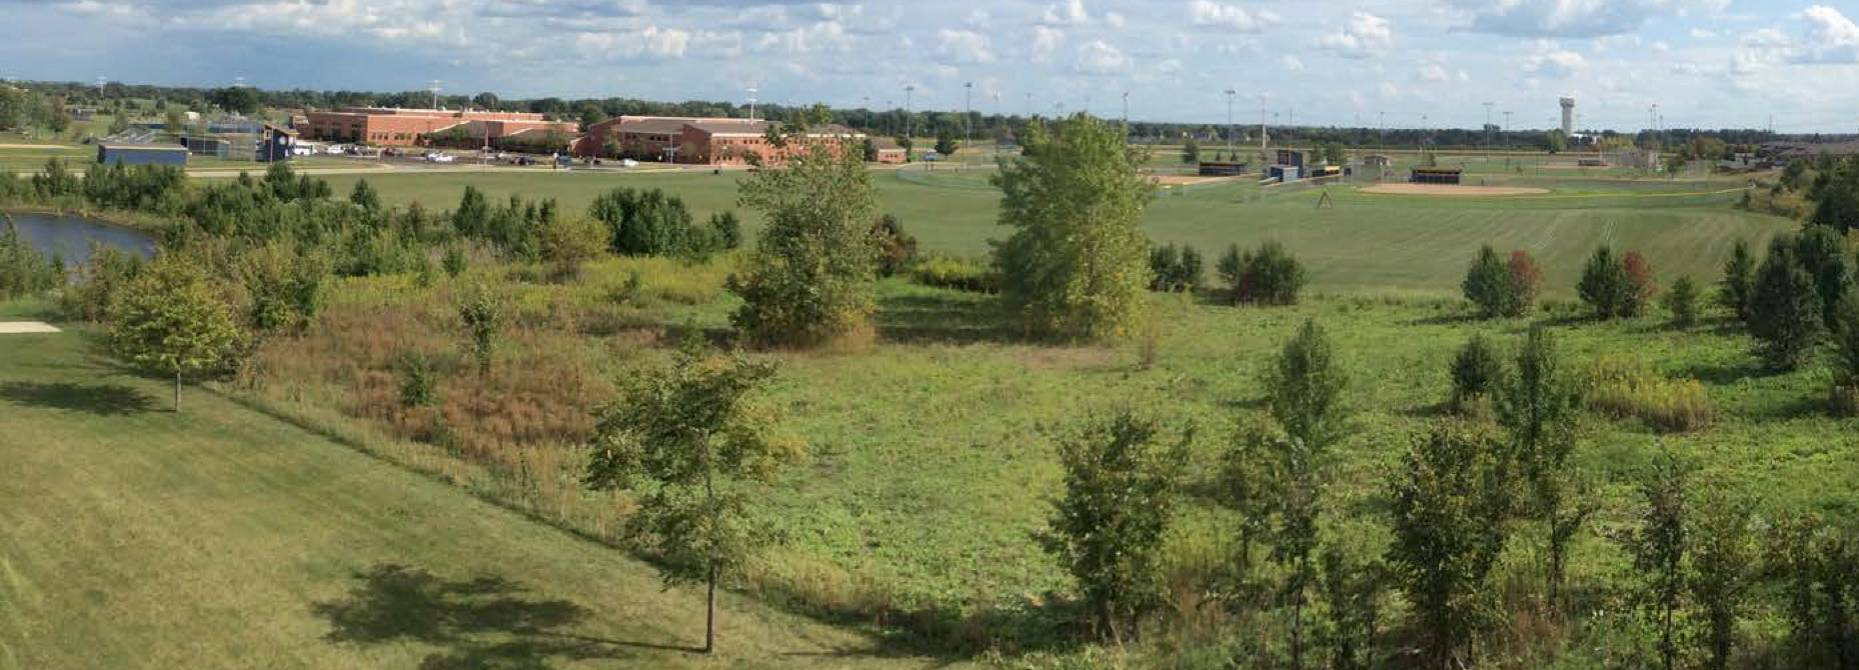 A 2-acre area south of the 95th Street Library that's part of Frontier Sports Complex in Naperville is under consideration as the site of a future plaza that could feature outdoor gathering, reading and fitness spaces.